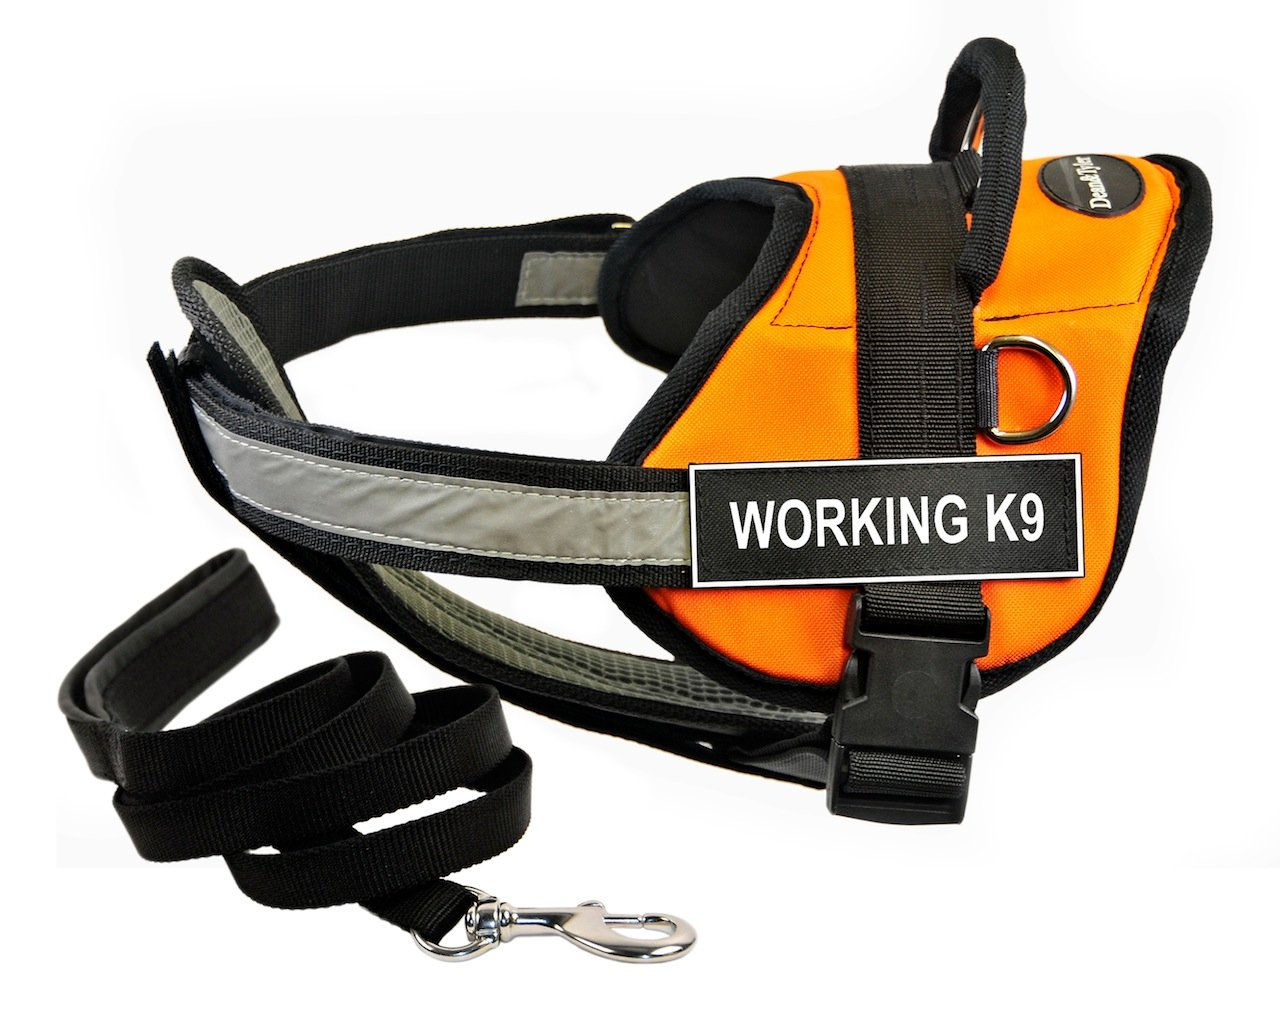 Dean & Tyler's DT Works orange WORKING K9 Harness with Chest Padding, X-Small, and Black 6 ft Padded Puppy Leash.